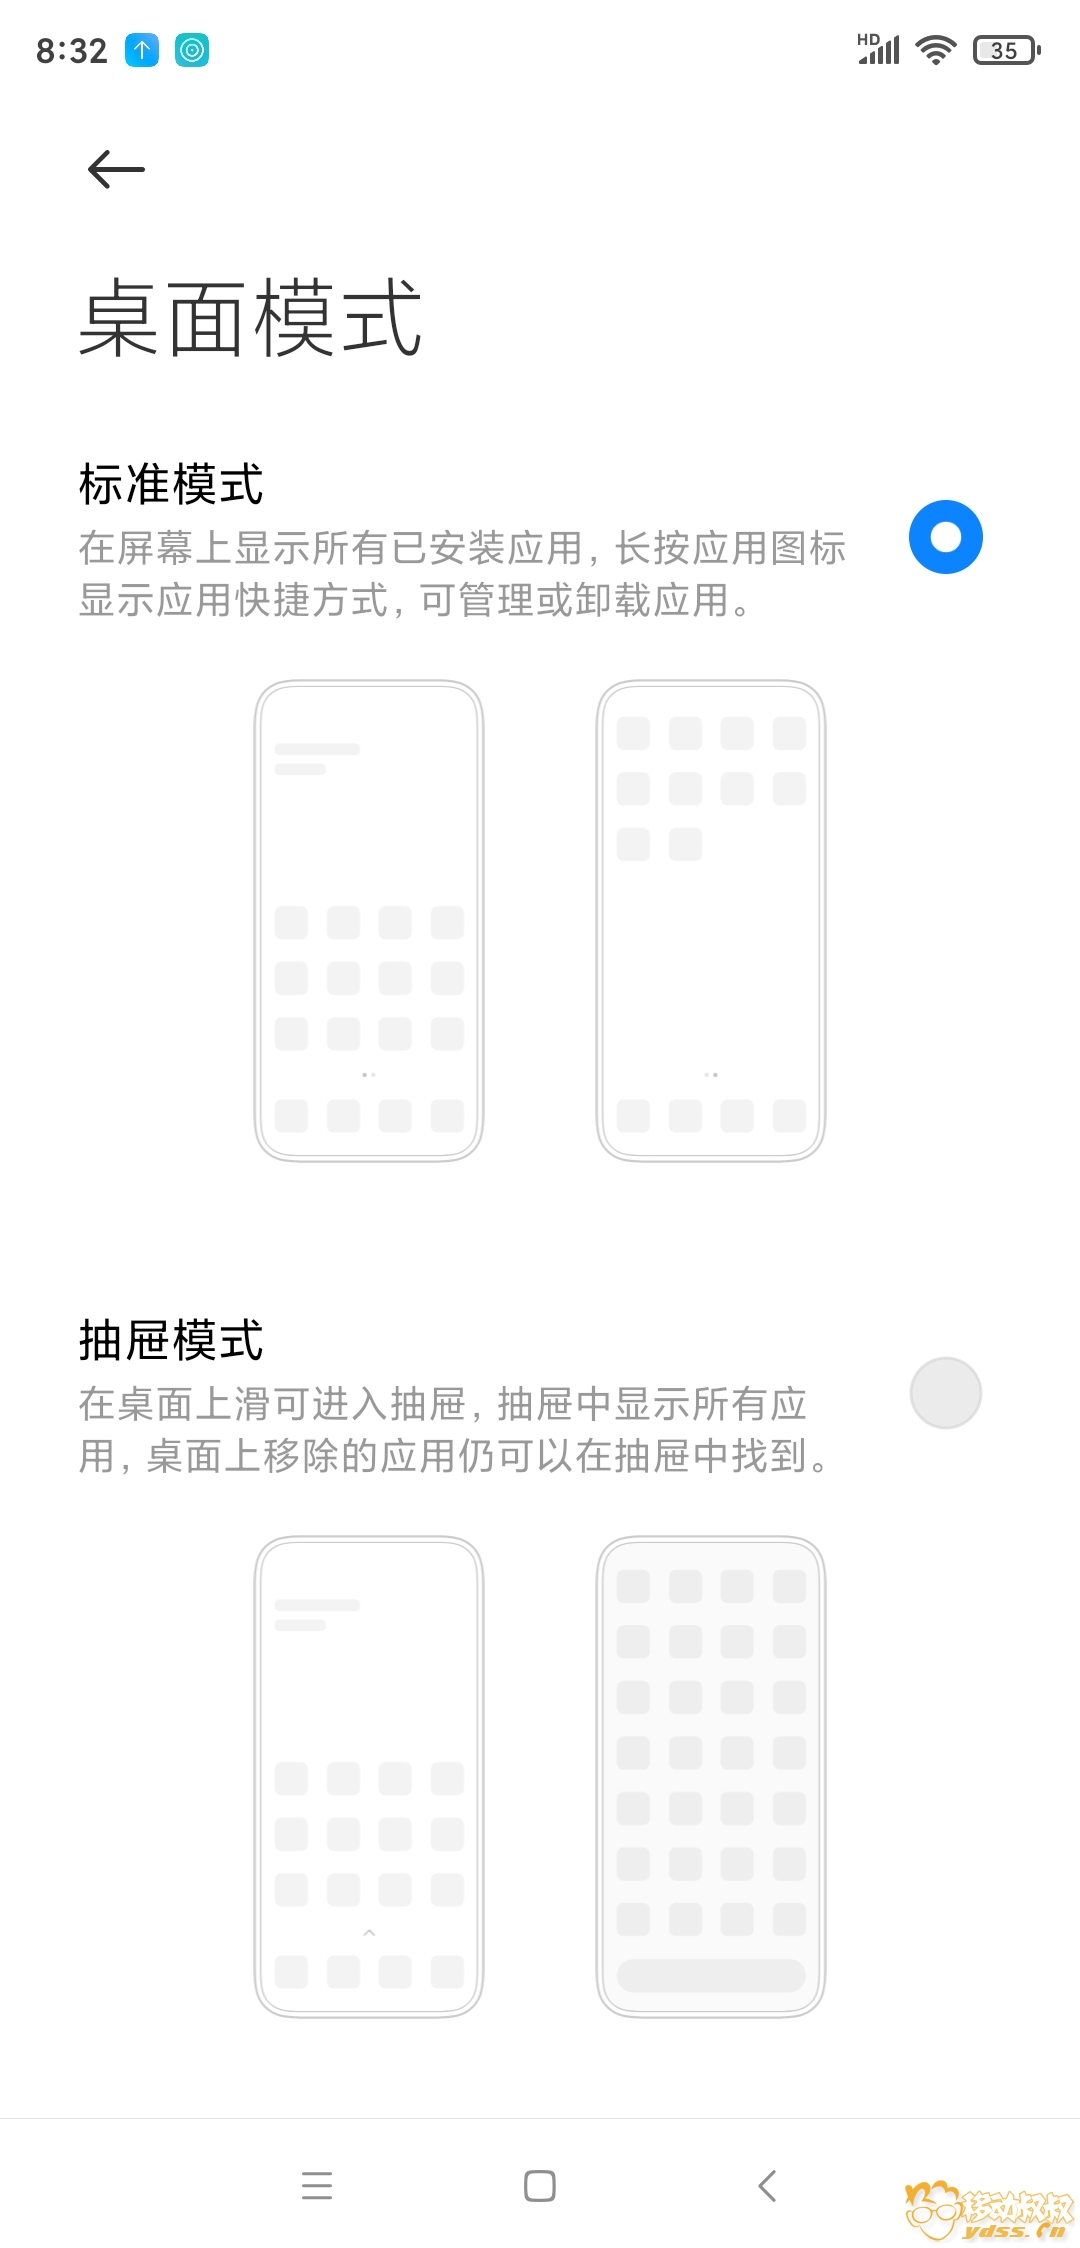 Screenshot_2020-04-30-08-32-17-673_com.miui.home.jpg